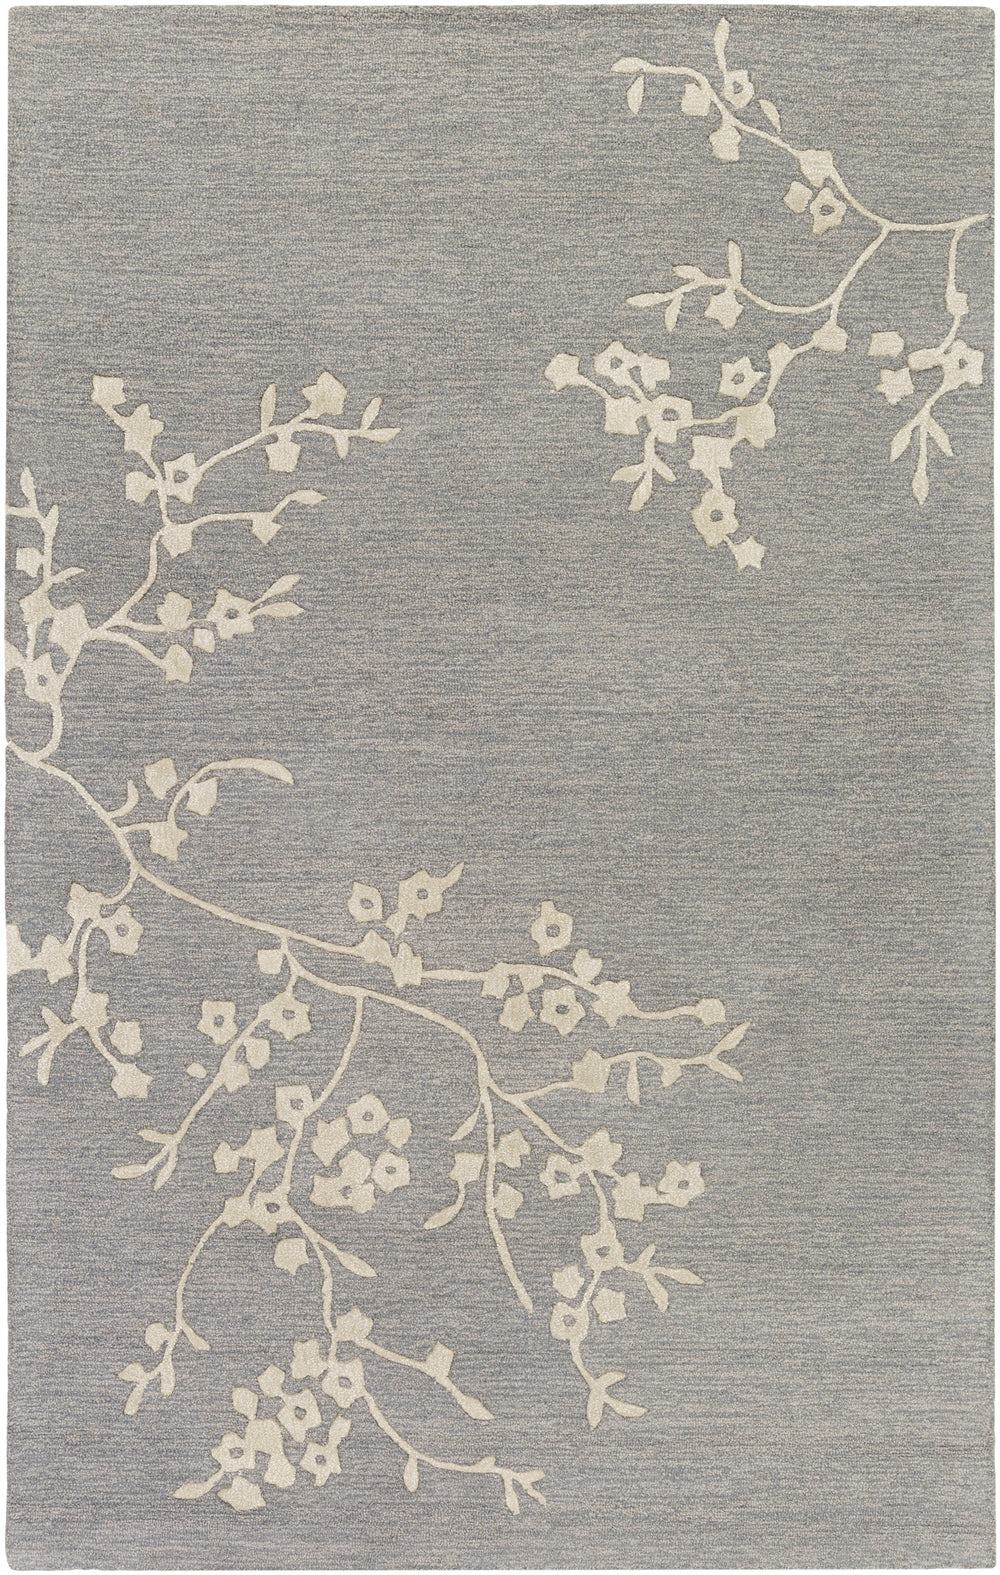 Artistic Weavers Alexander Smith AXR2227 Area Rug